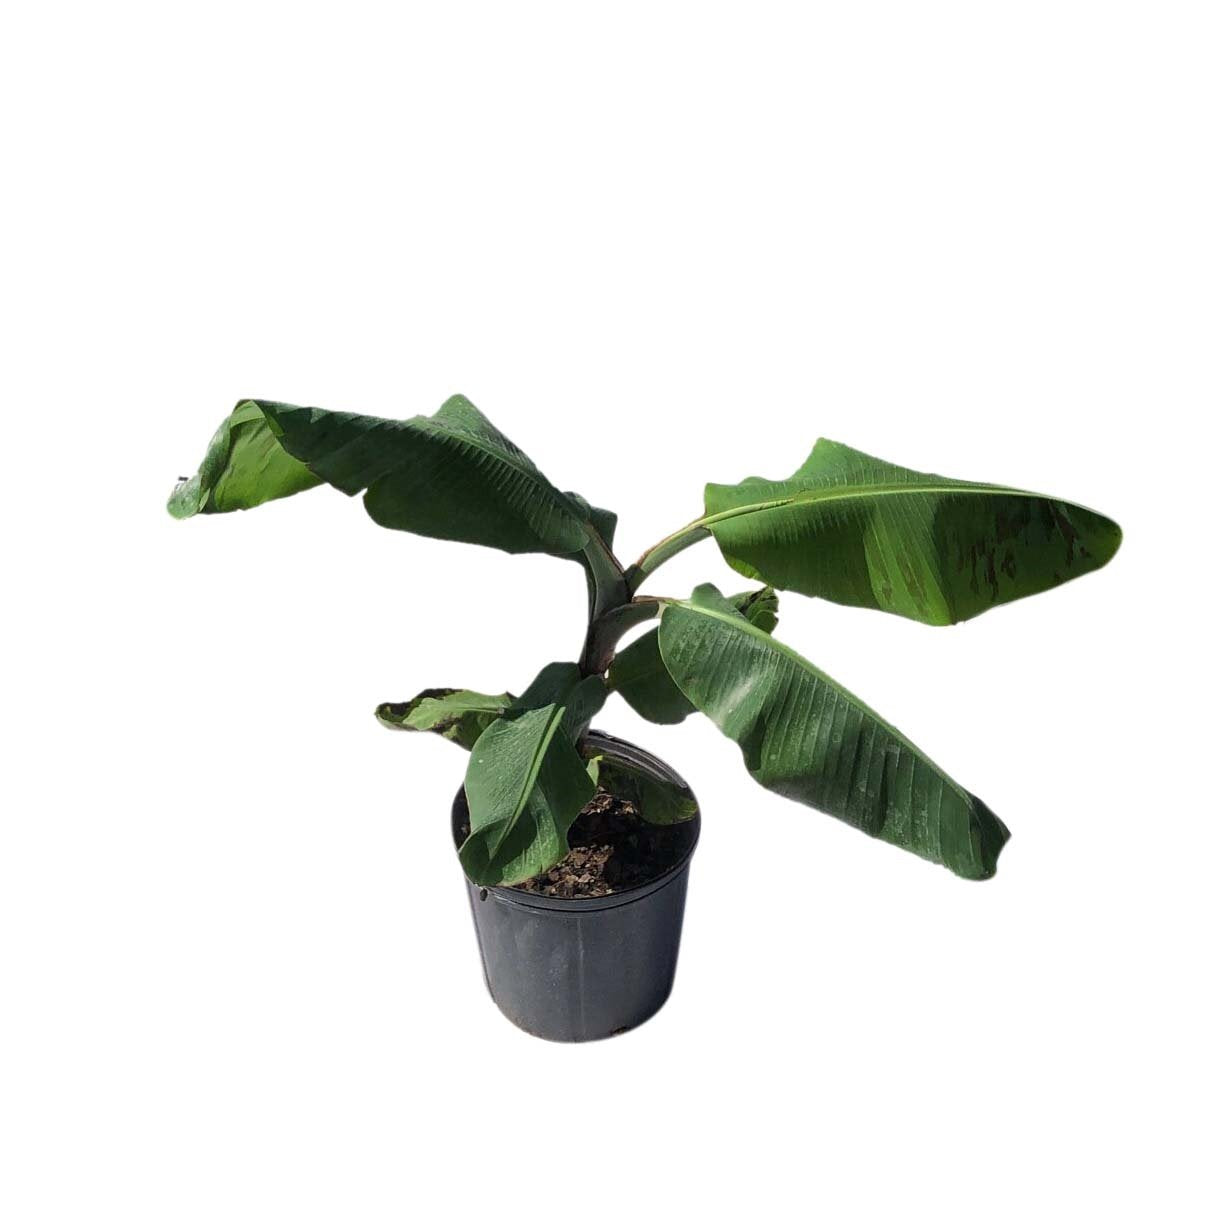 Cavendish Dwarf Banana Plant 3 Gal Container From Florida Everglades Farm